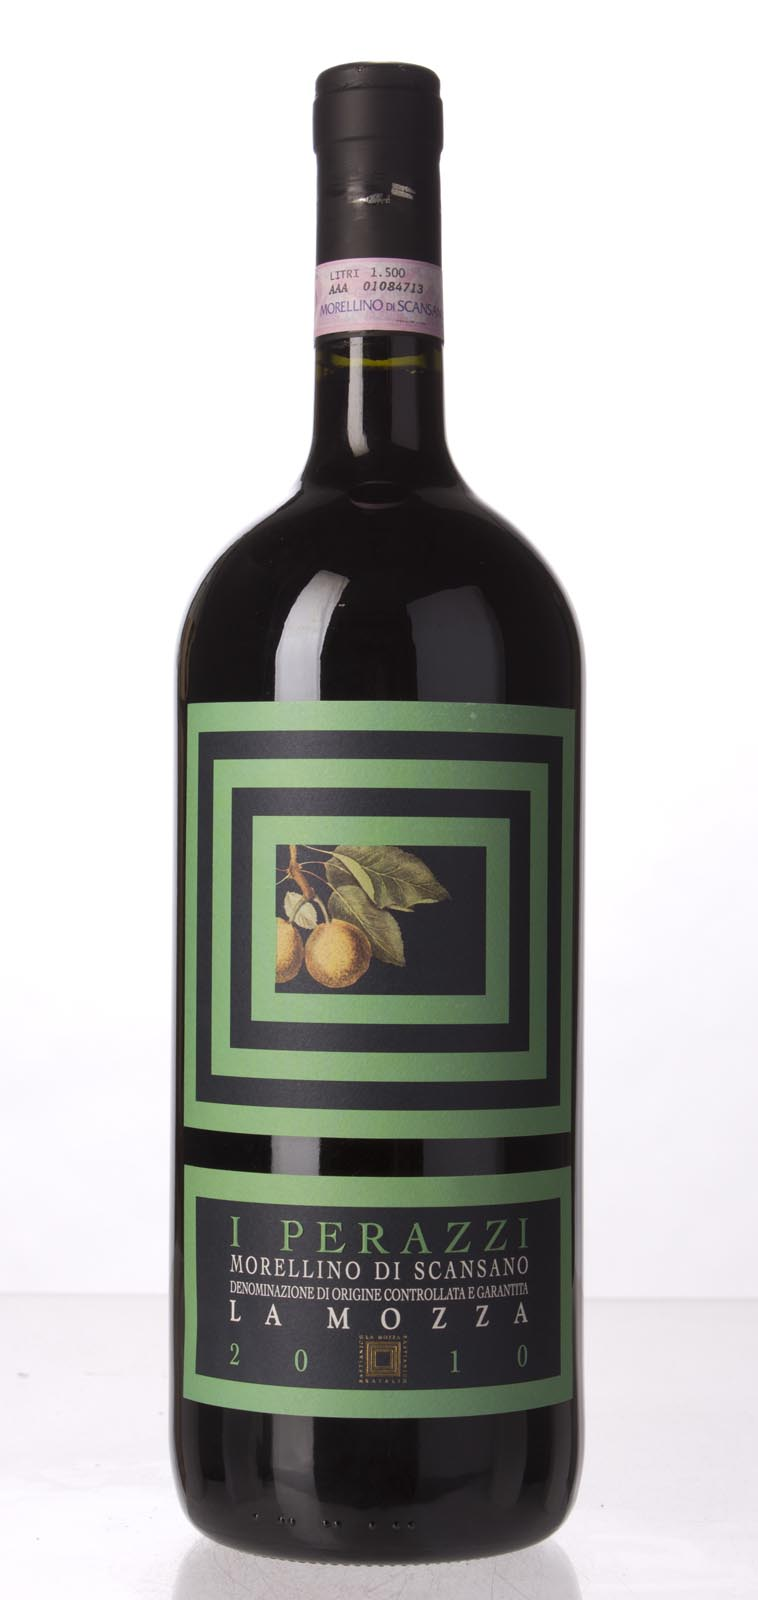 La Mozza Morellino di Scansano I Perazzi 2010, 1.5L (AG90) from The BPW - Merchants of rare and fine wines.